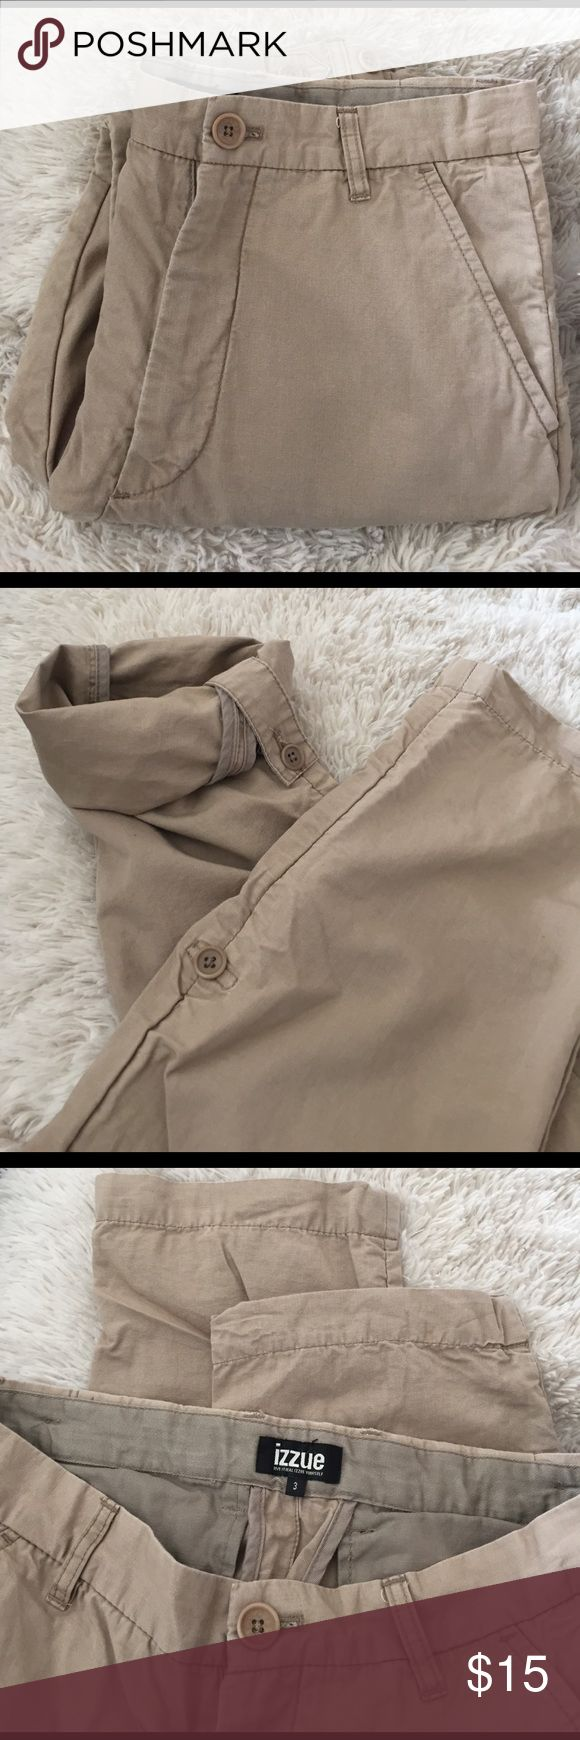 Men Khakis Pants Khaki Pants, you can also roll the bottom up little bit.see photos. The size is 3, which is 30 w. Pants Chinos & Khakis